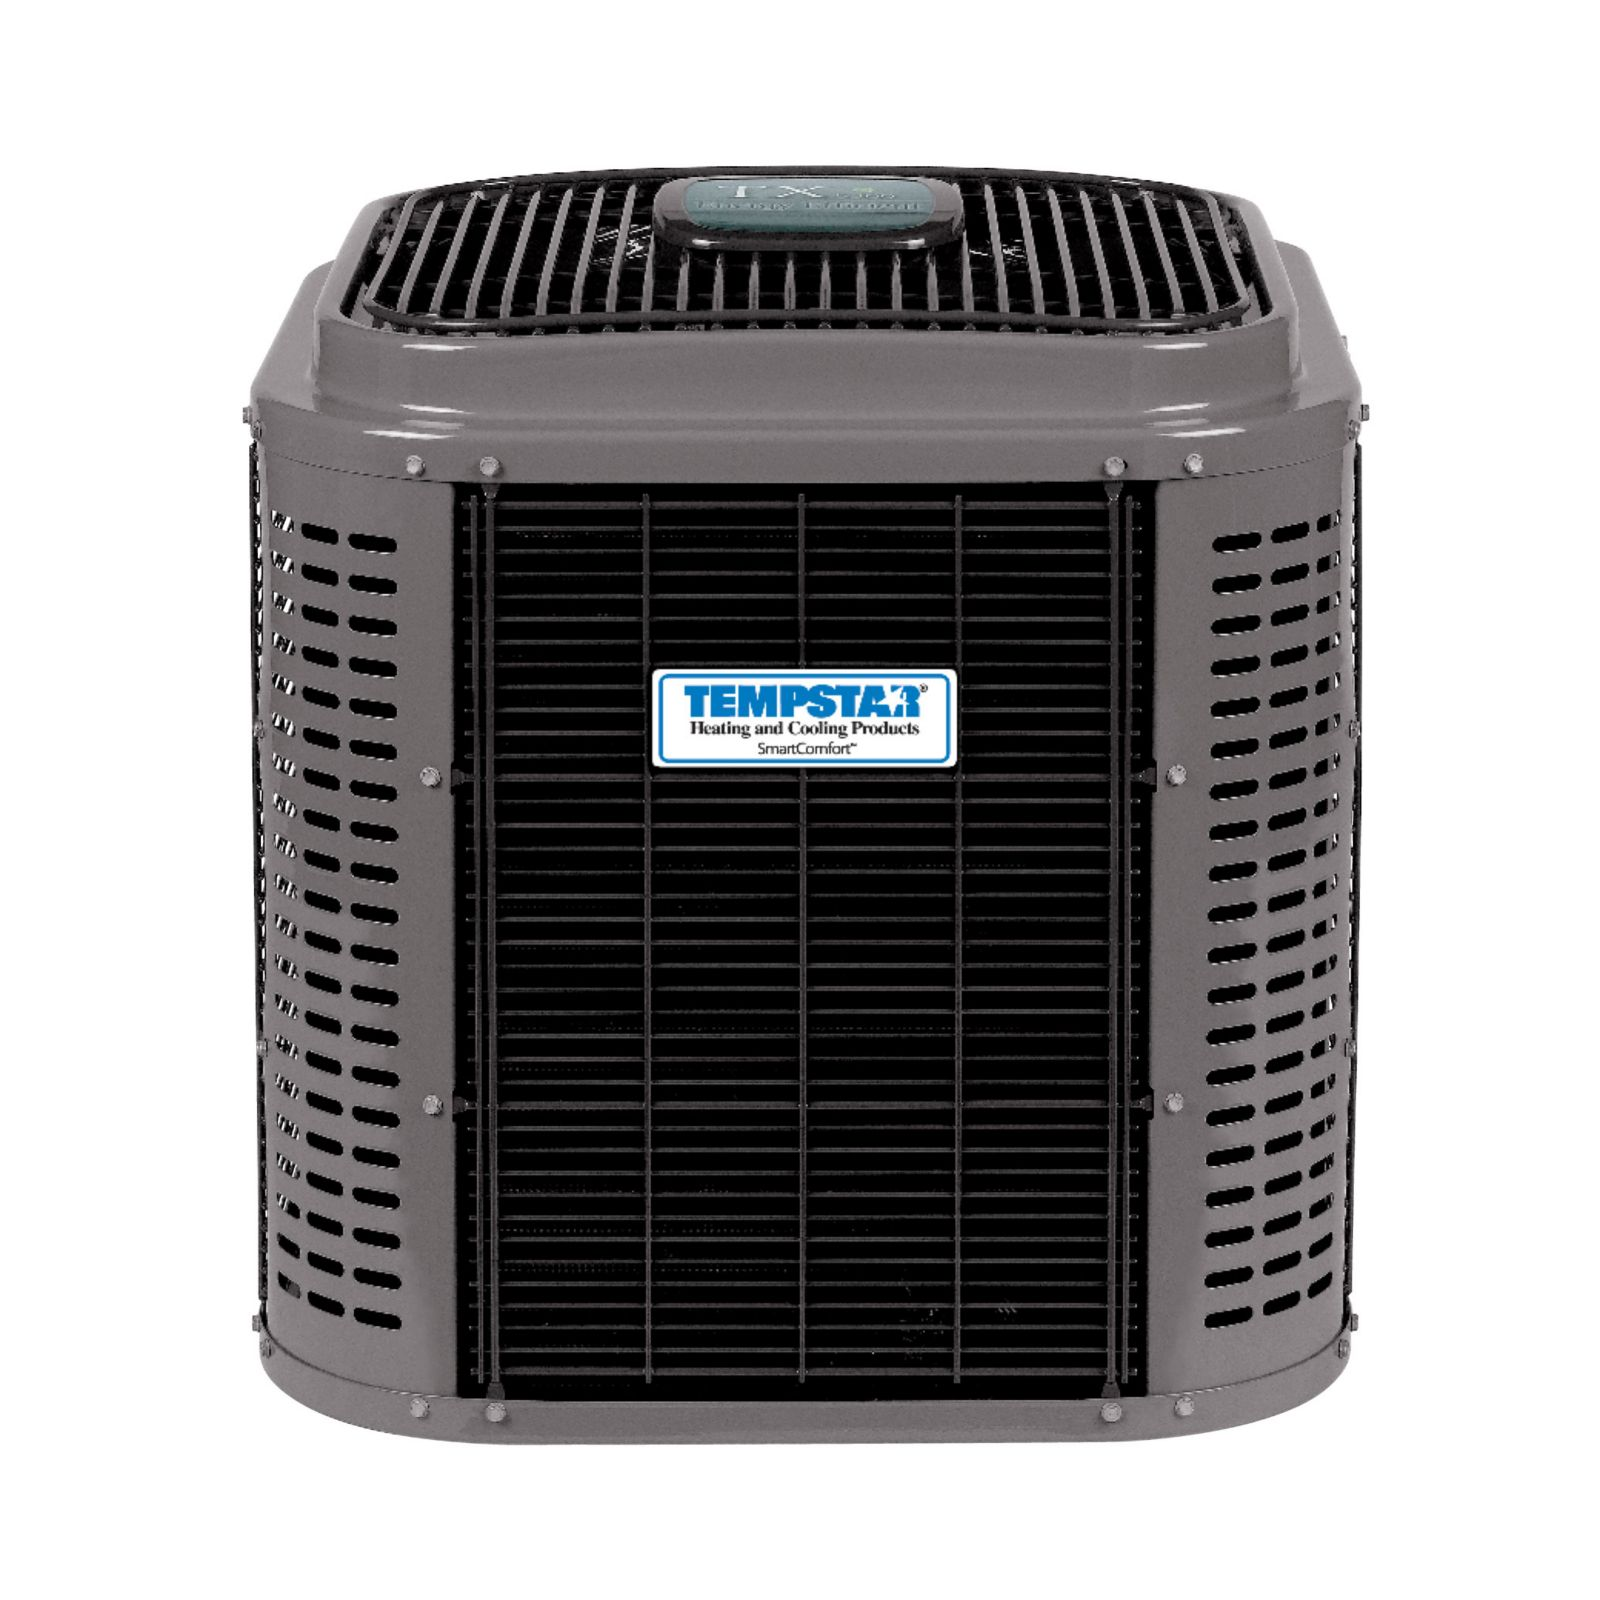 Tempstar TSA642GKA - 3 1/2 Ton, 16 SEER, R410A Single Stage Communicating Air Conditioner, 208/230-1-60, Coil Guard Grille